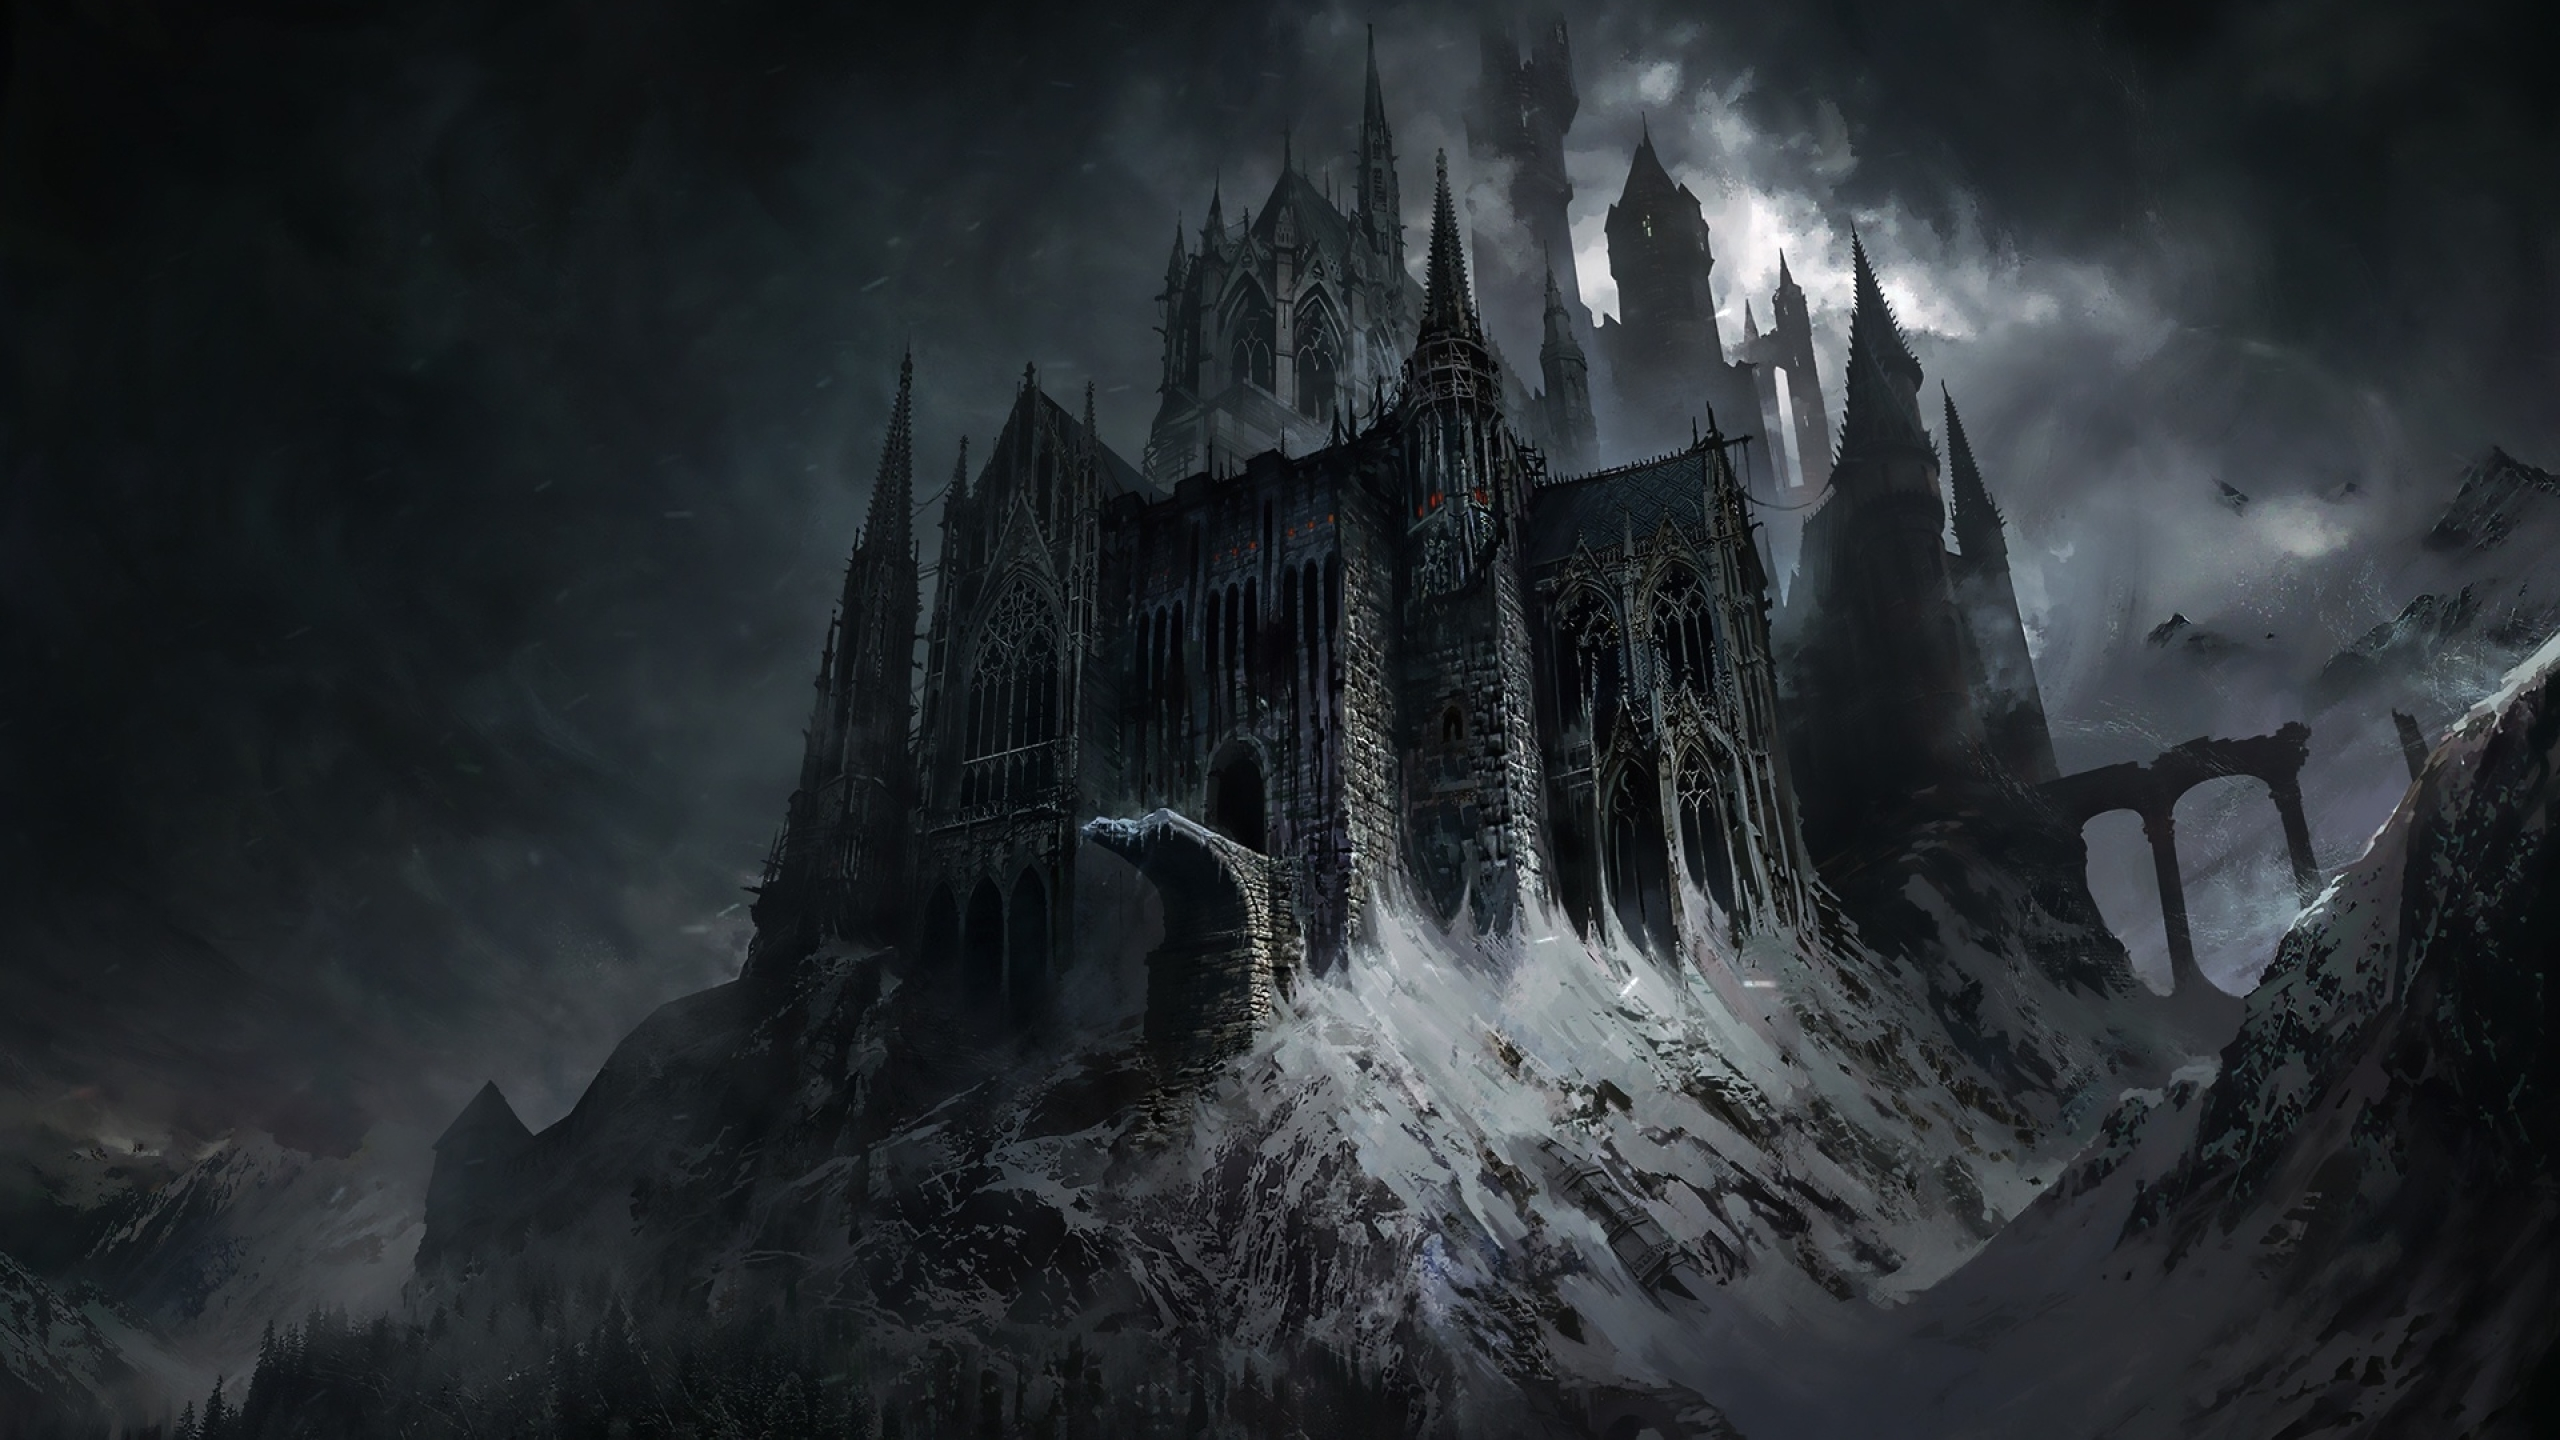 2560x1440 Evil Castle Dark Fantasy 1440p Resolution Wallpaper Hd Fantasy 4k Wallpapers Images Photos And Background